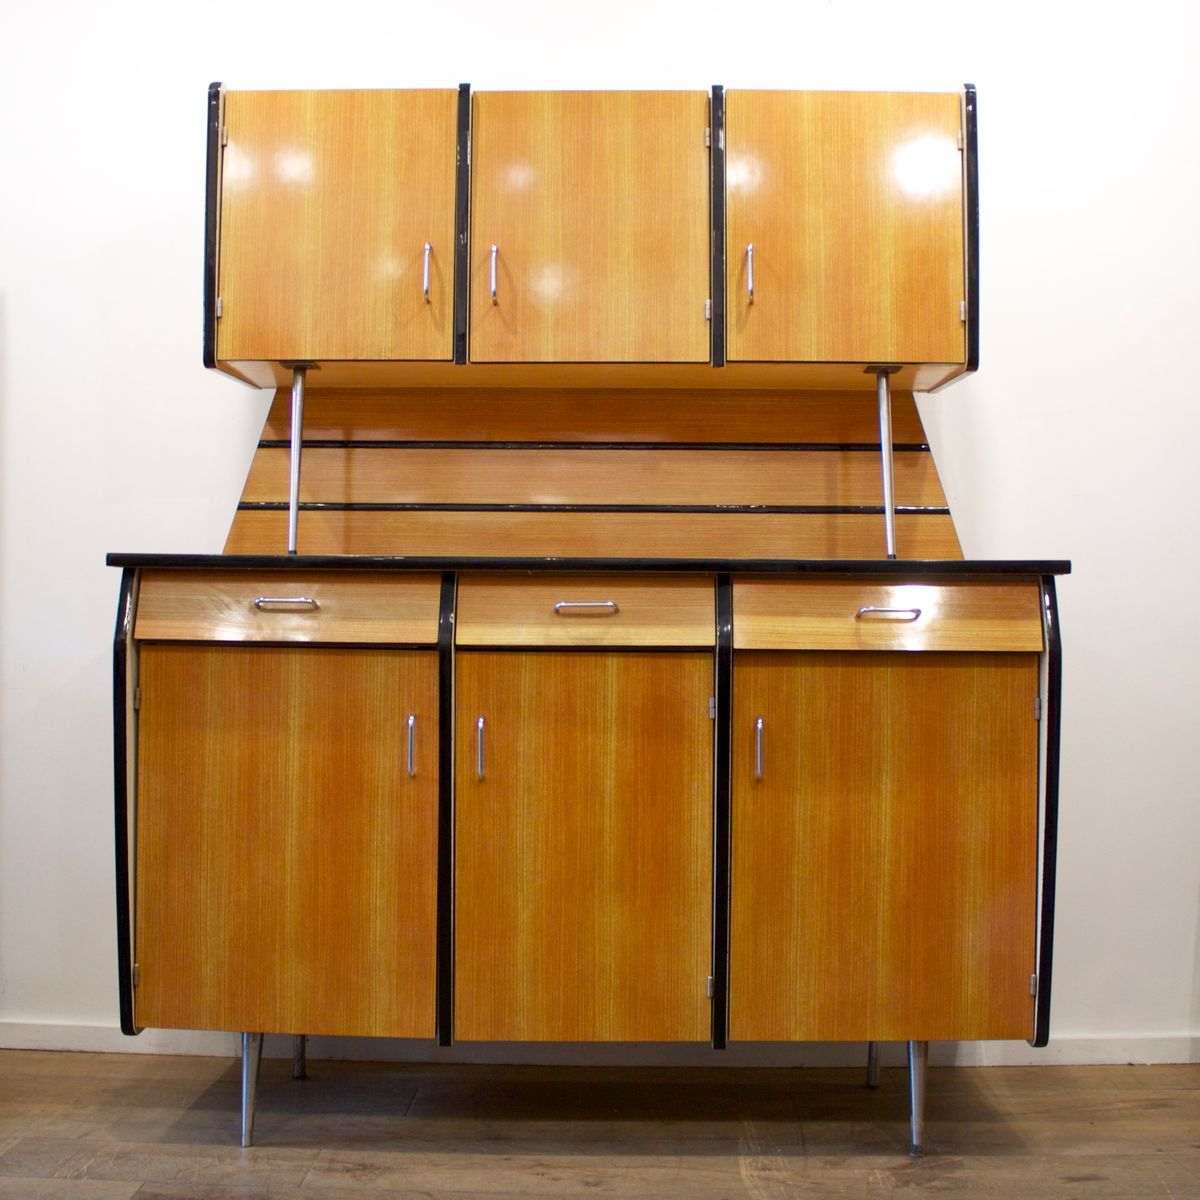 Kitchen Dresser French Vintage Formica Kitchen Dresser 1950s For Sale At Pamono